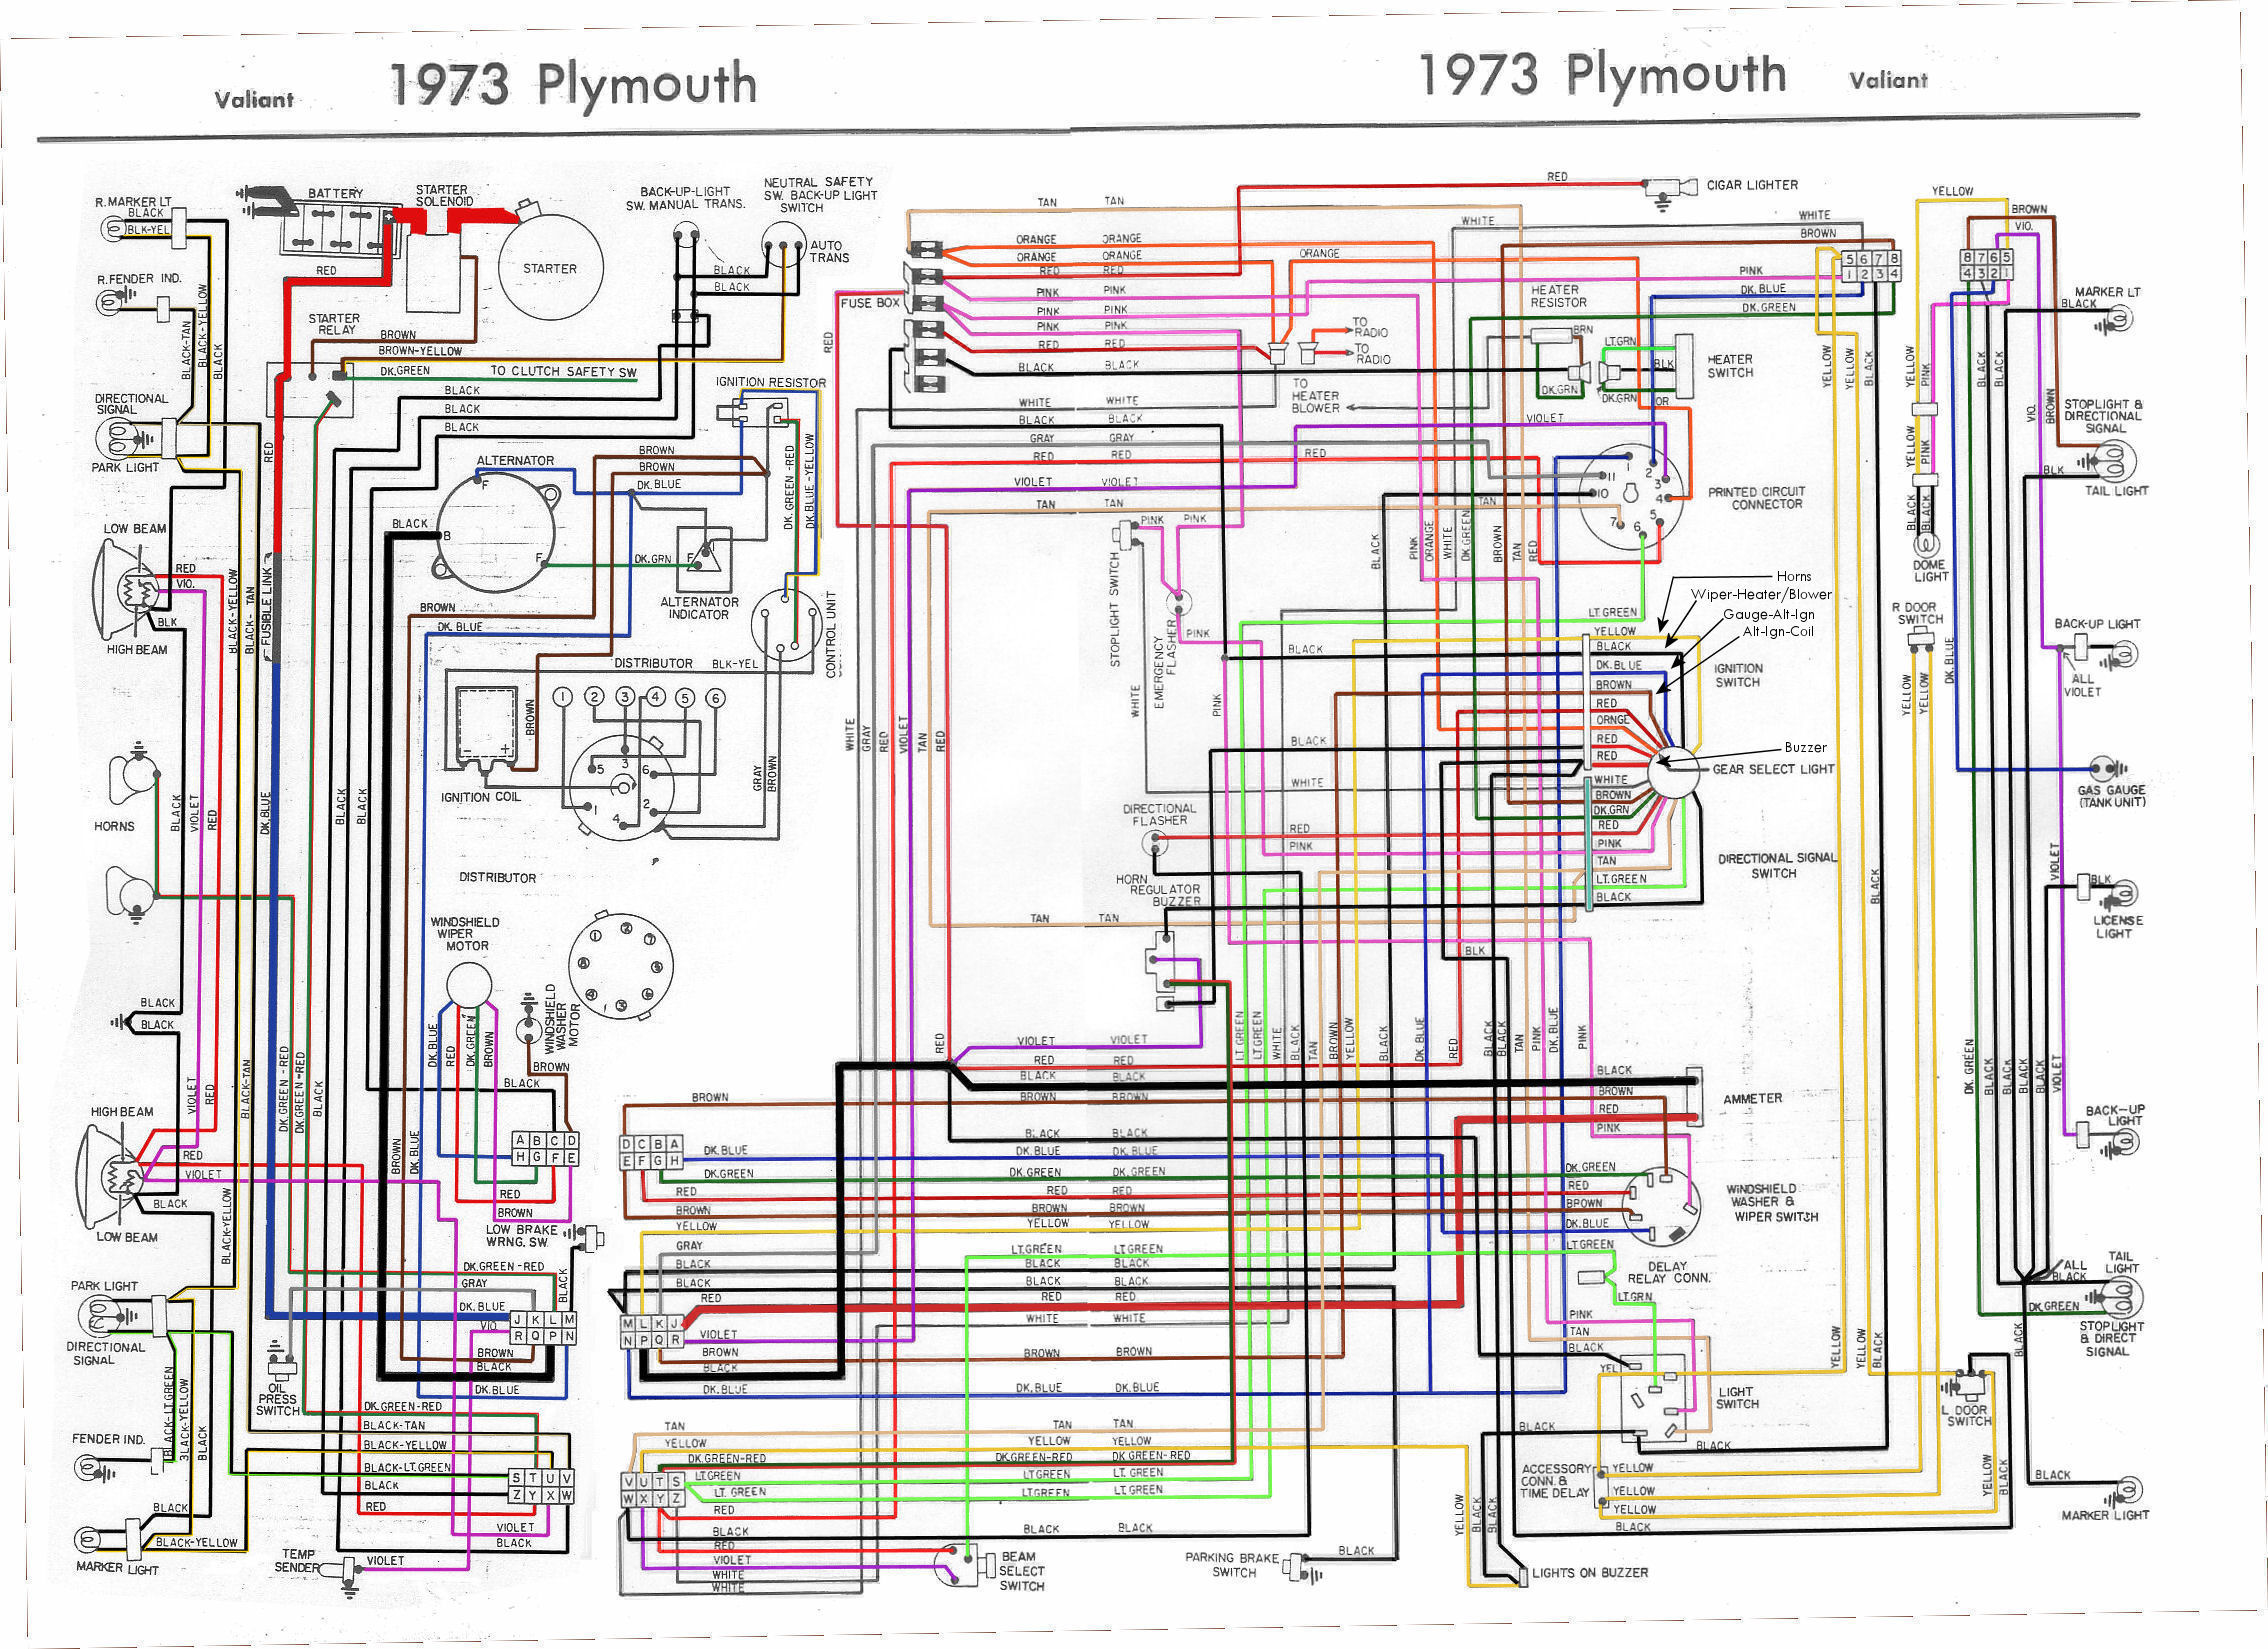 yamaha xs850 wiring diagram wiring diagrams1972 plymouth valiant wiring diagram 11 17 petraoberheit de \\u20221974 plymouth valiant wiring diagram 2 13 ms krankenfahrten de u2022 rh 2 13 ms